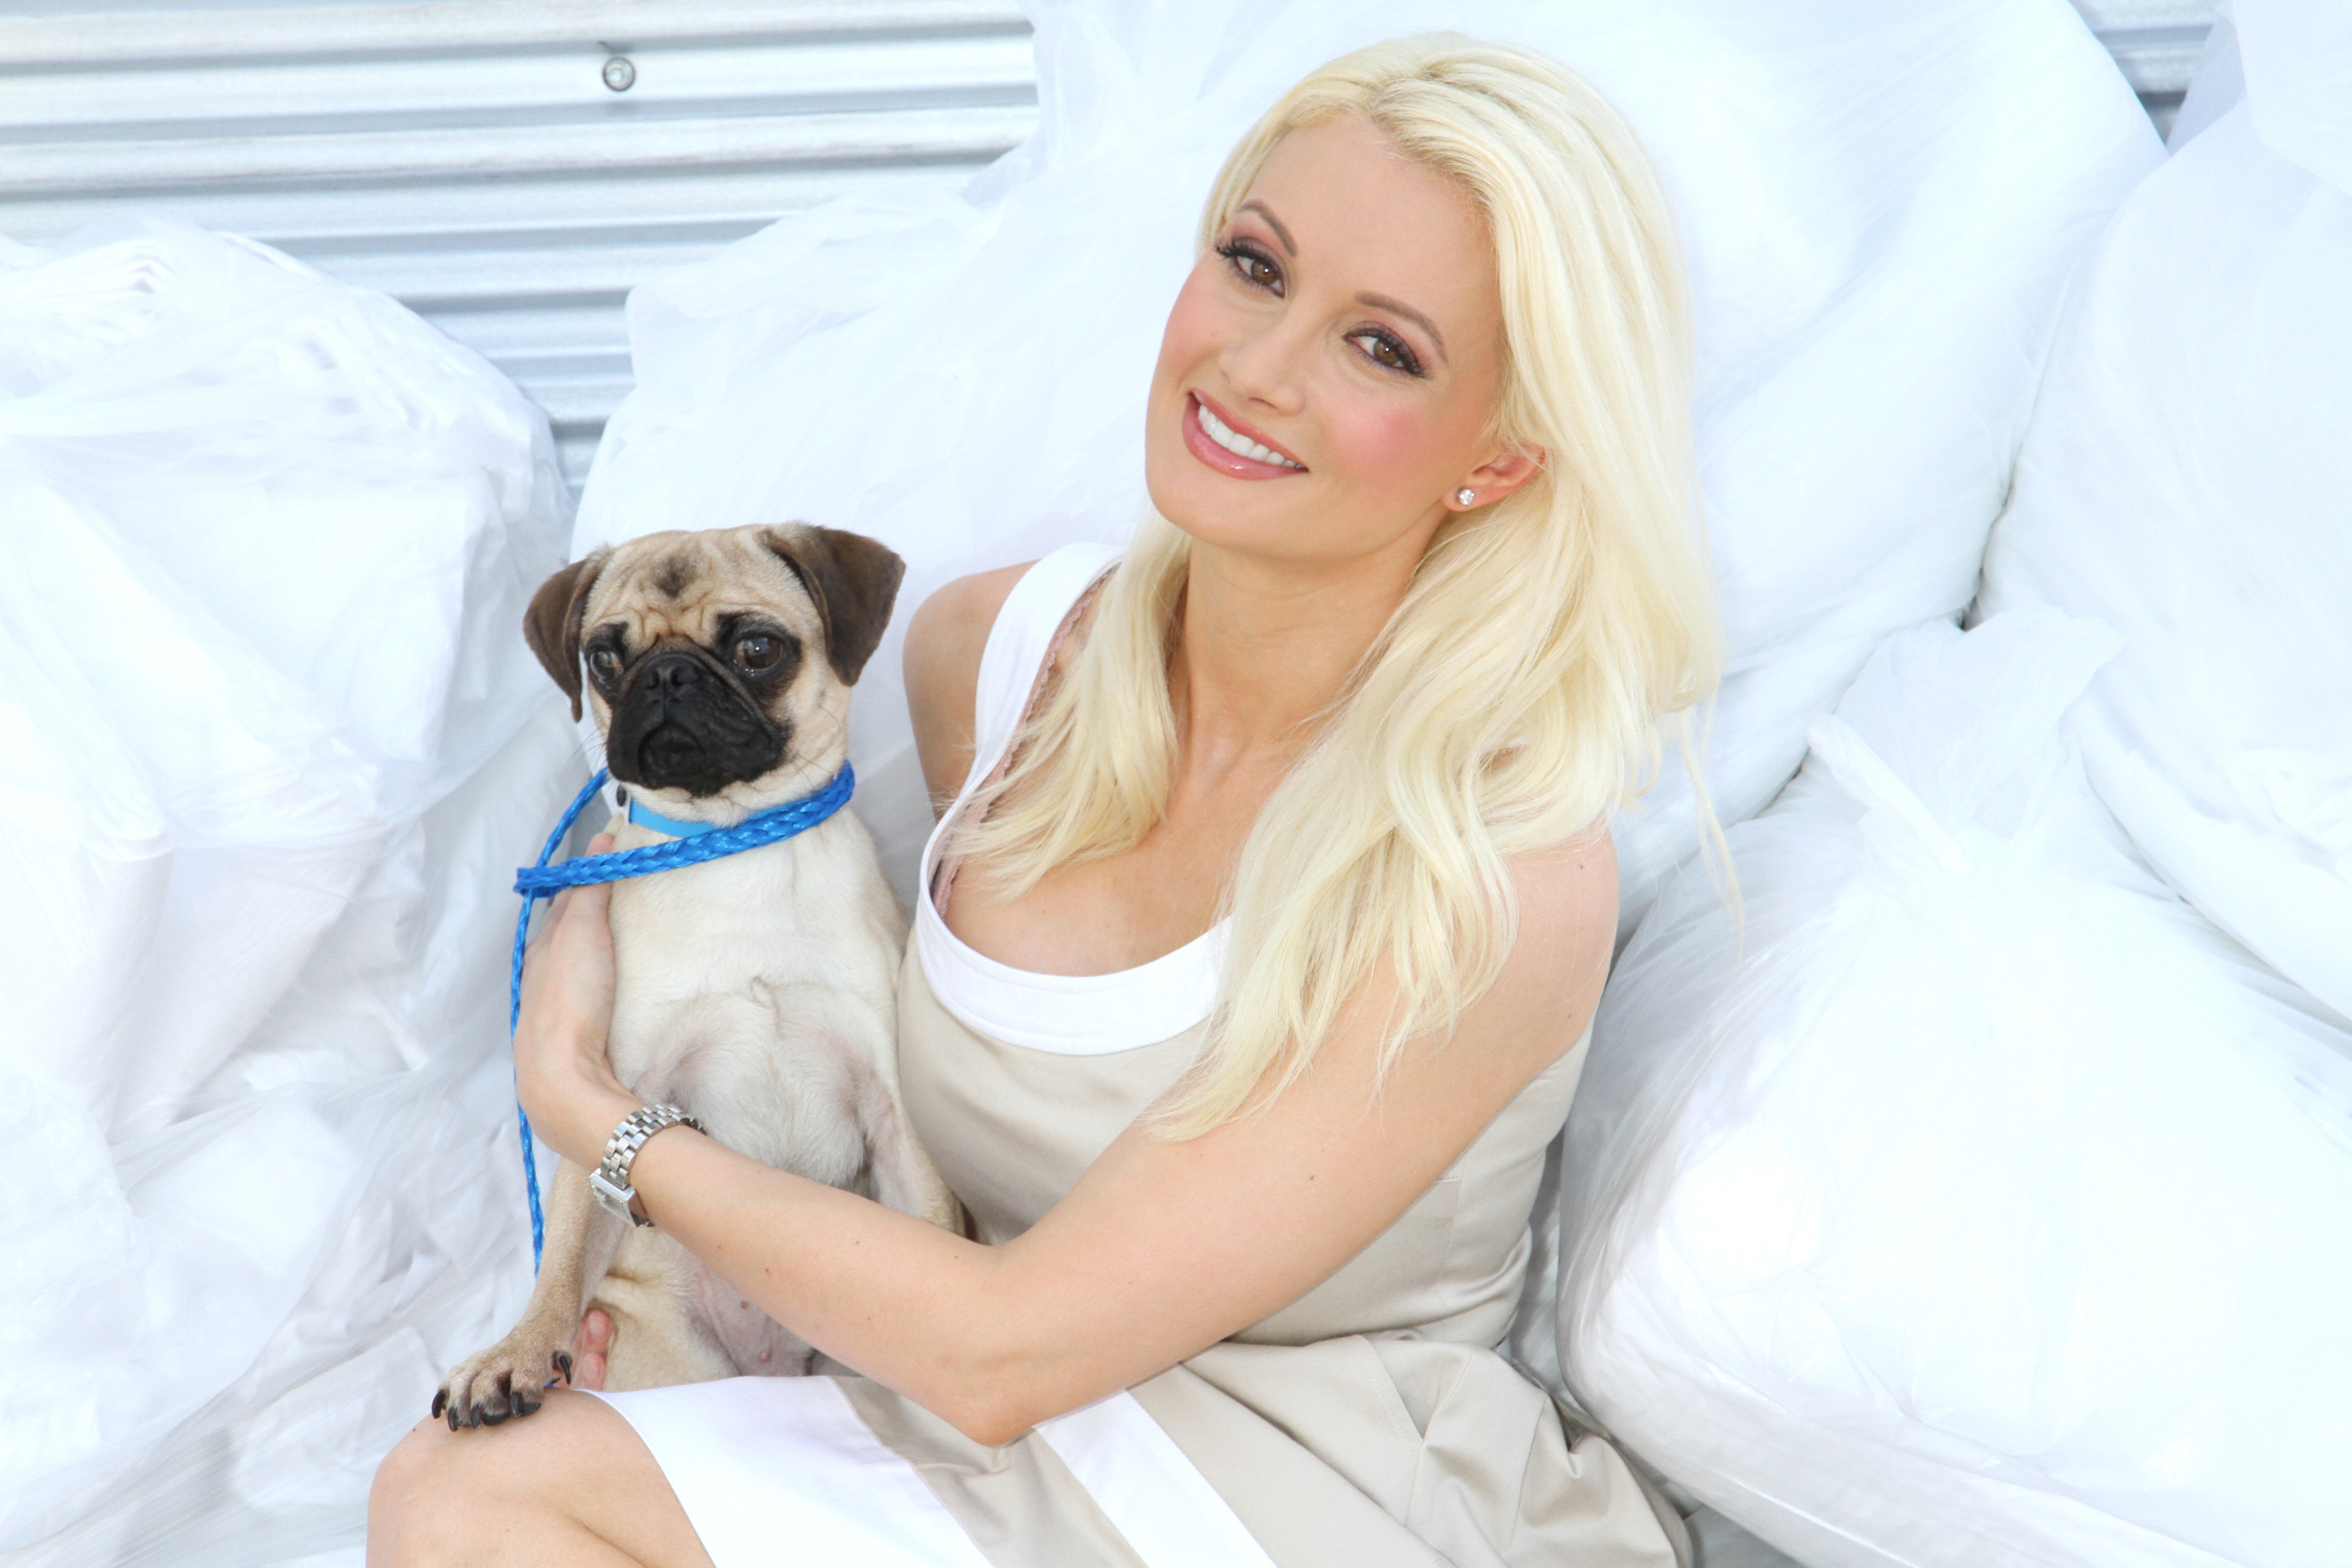 Former Playmate says she's been too busy to have a baby